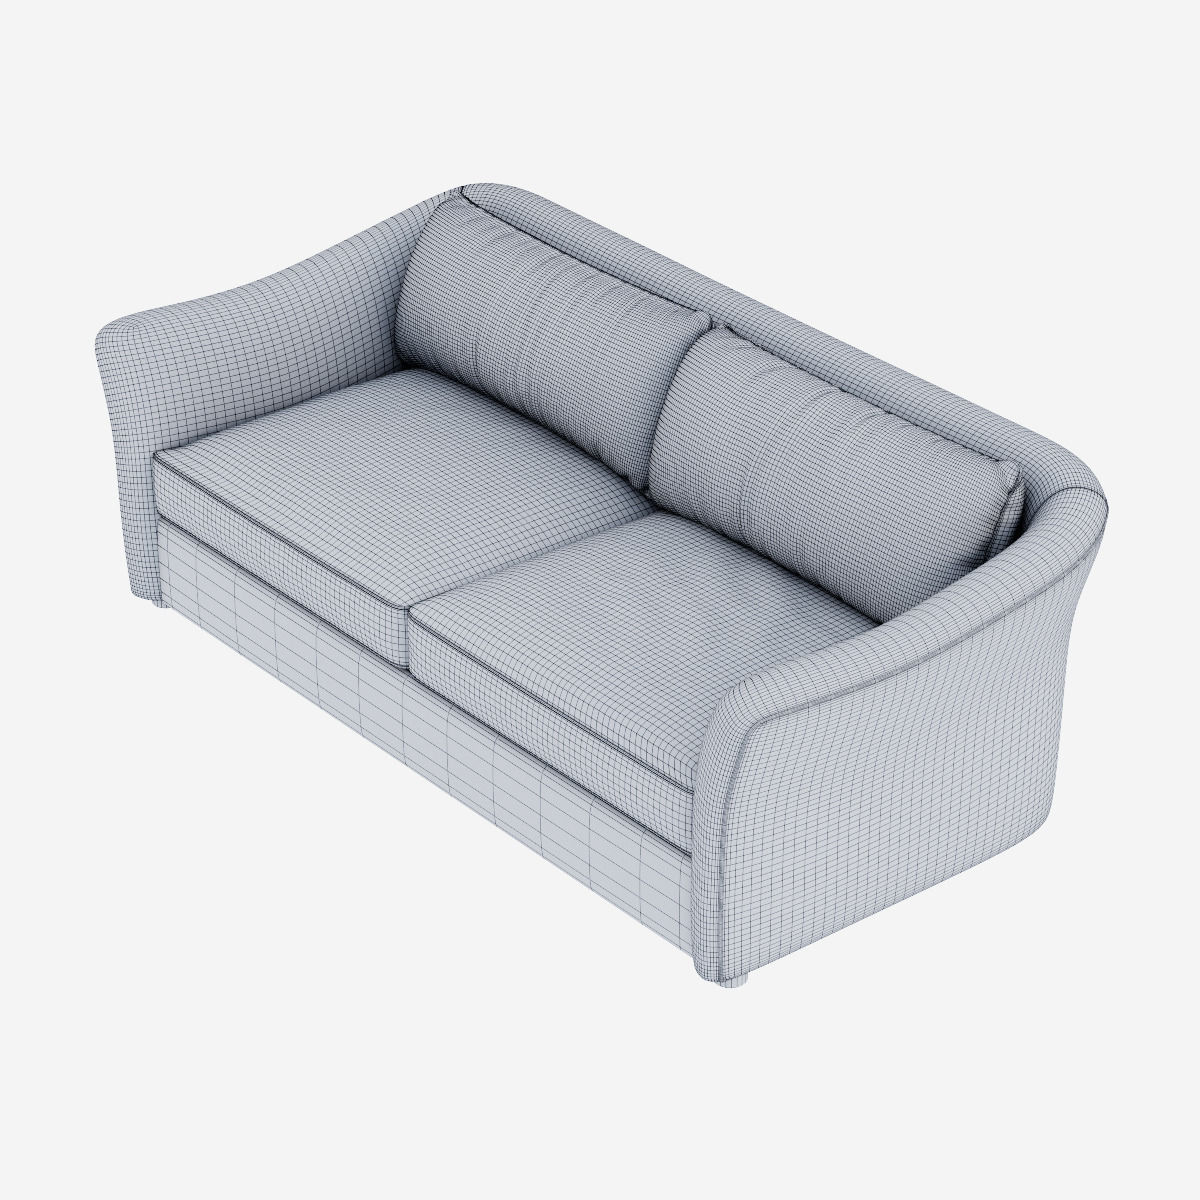 West Elm Delaney Sofa Model Max Obj Mtl Fbx 6